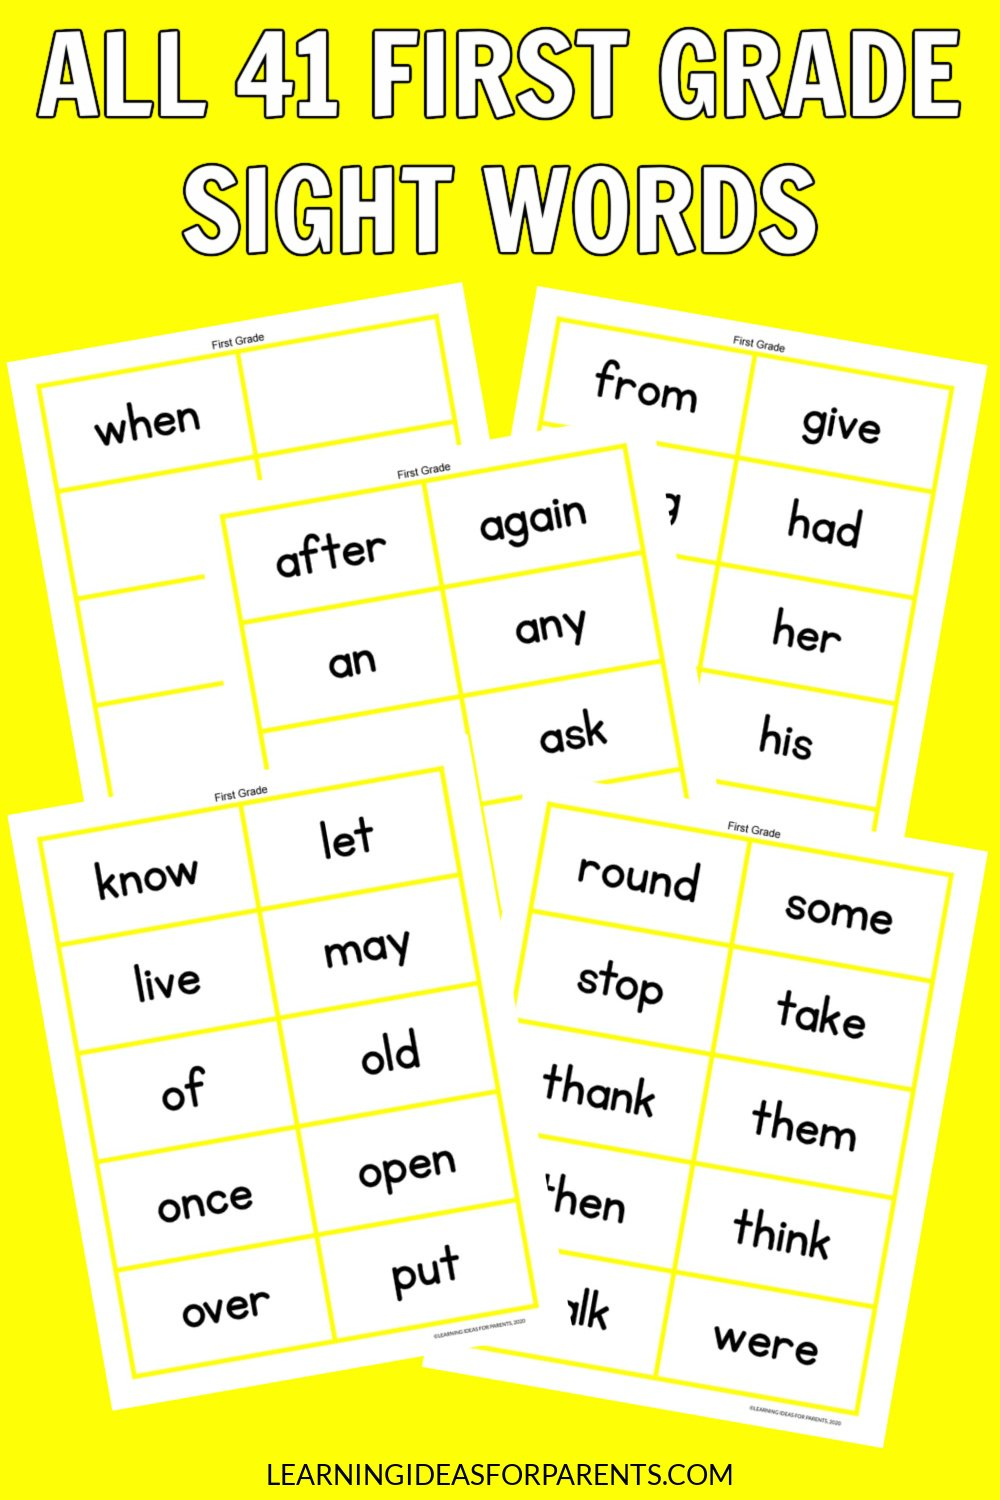 Free printable flash cards for all 41 Dolch first grade words.